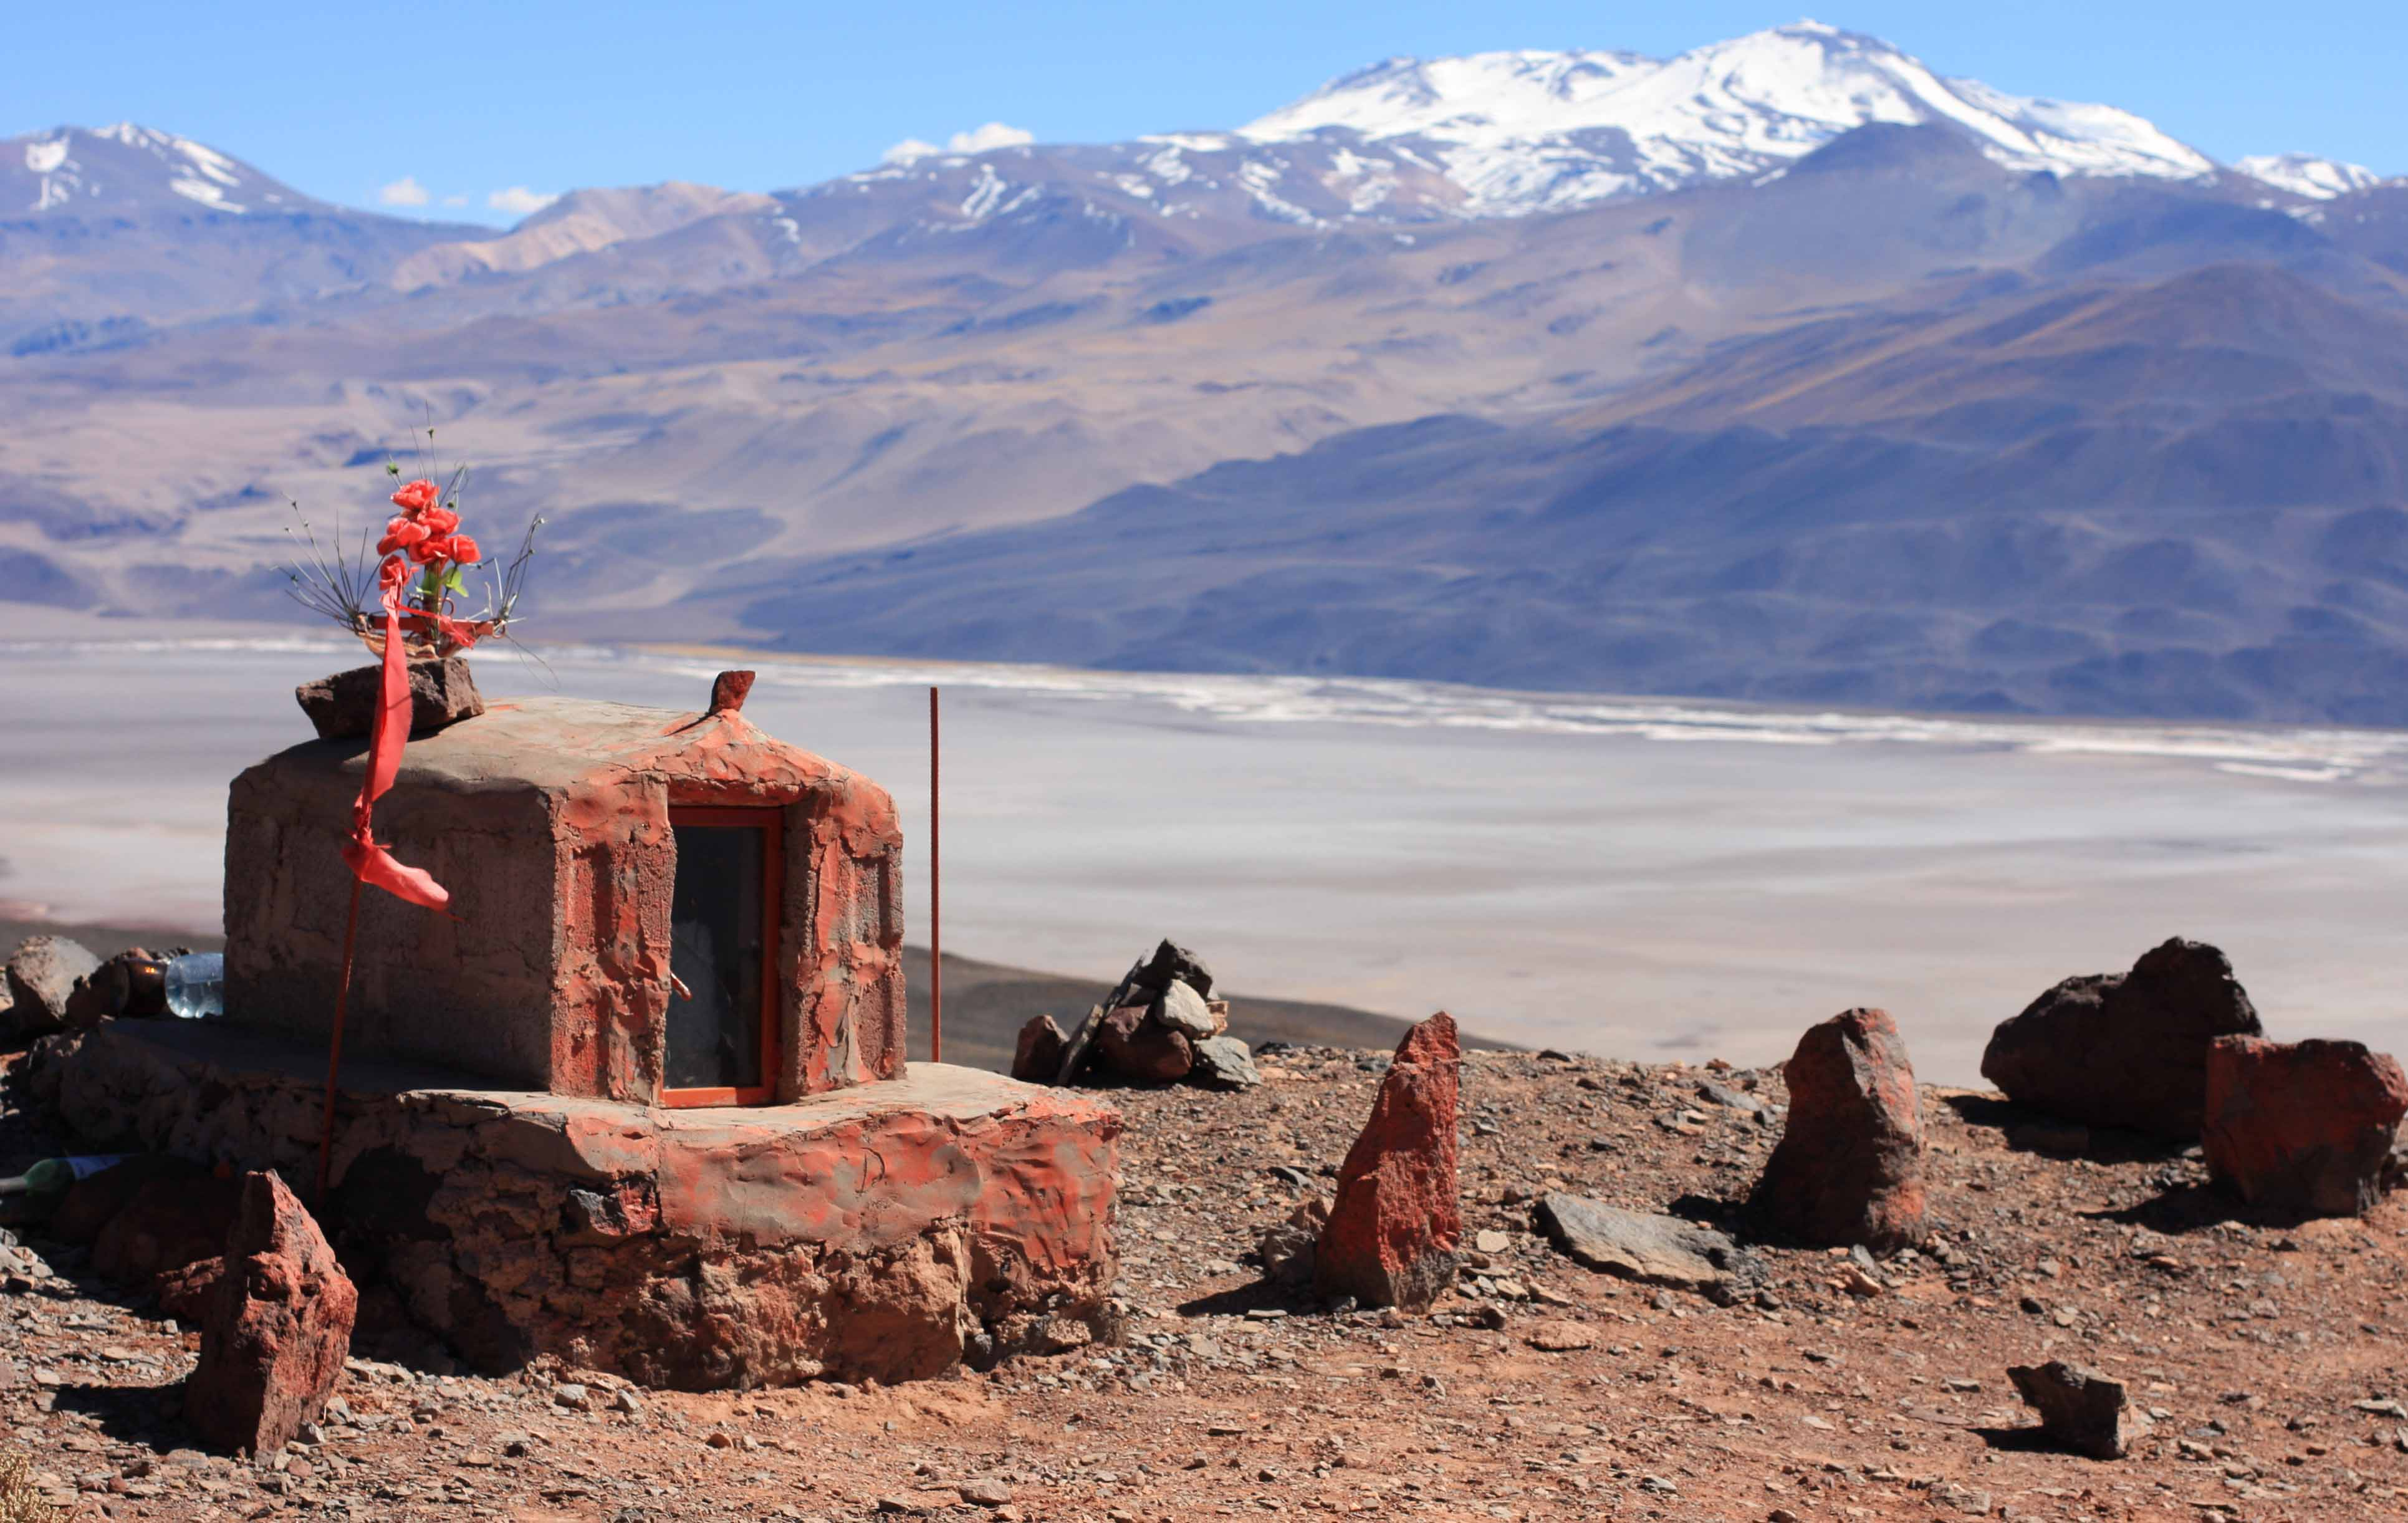 Viaggio nel Far West argentino - OnTheRoad-News.it - 22.06.2015